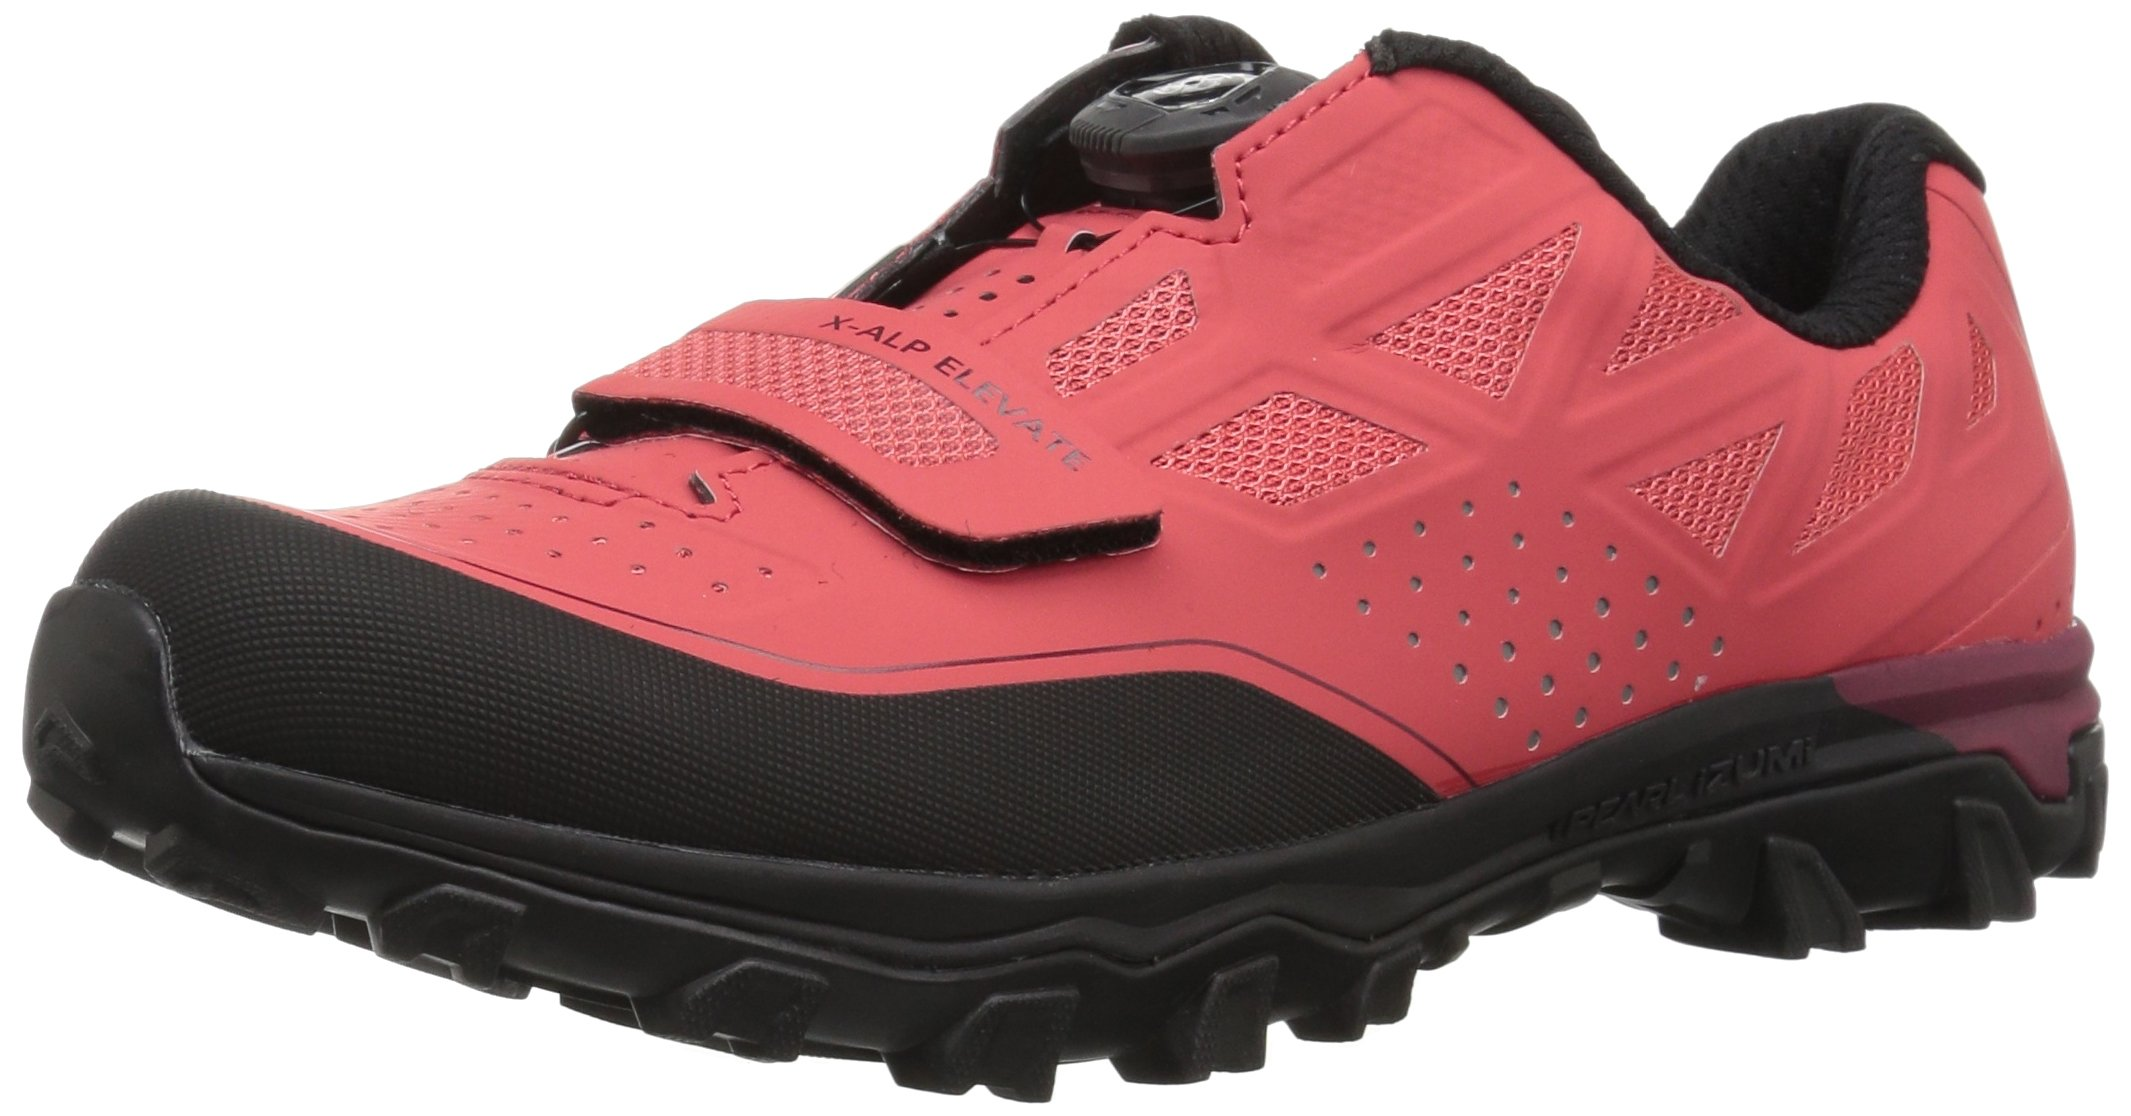 Pearl iZUMi Women's W X-Alp Elevate Cycling Shoe, Cayenne/Port, 38.0 M EU (6.8 US)